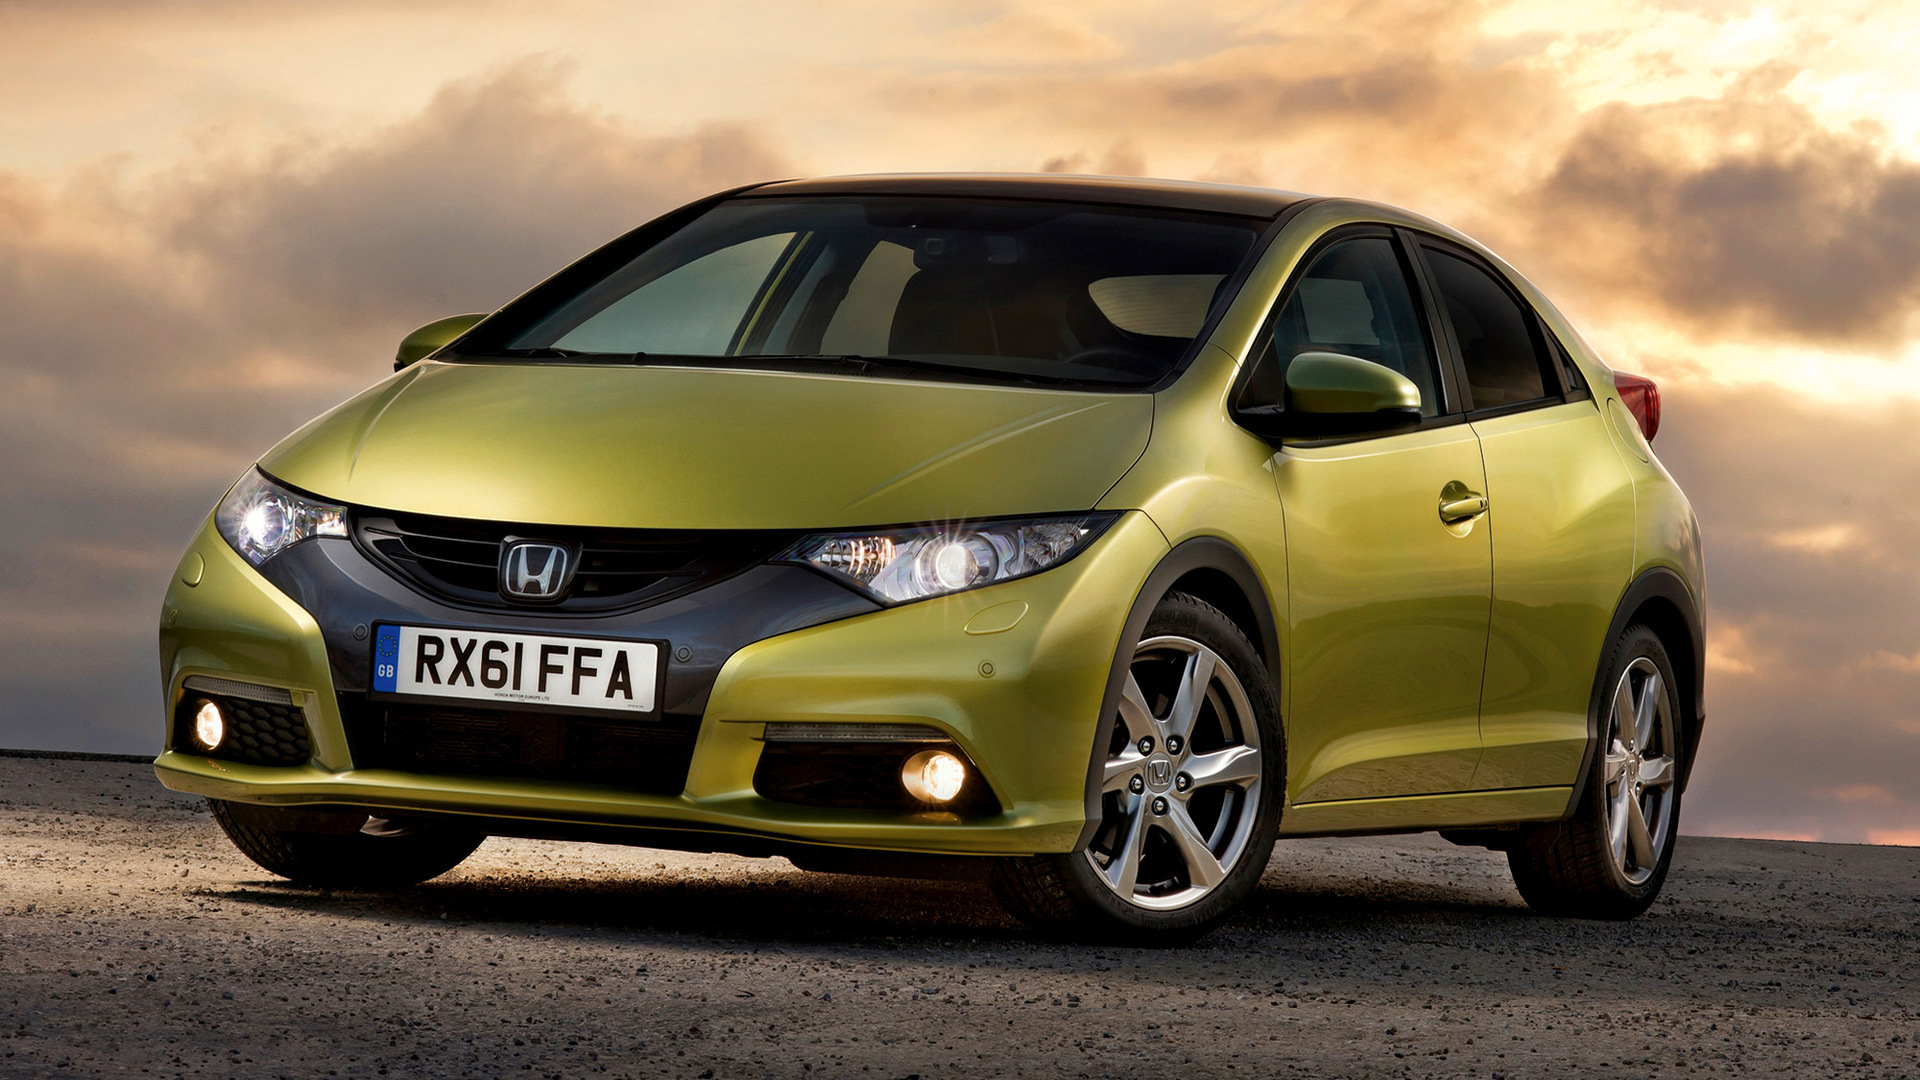 Honda Civic Hatchback 2011 Wallpapers And Hd Images